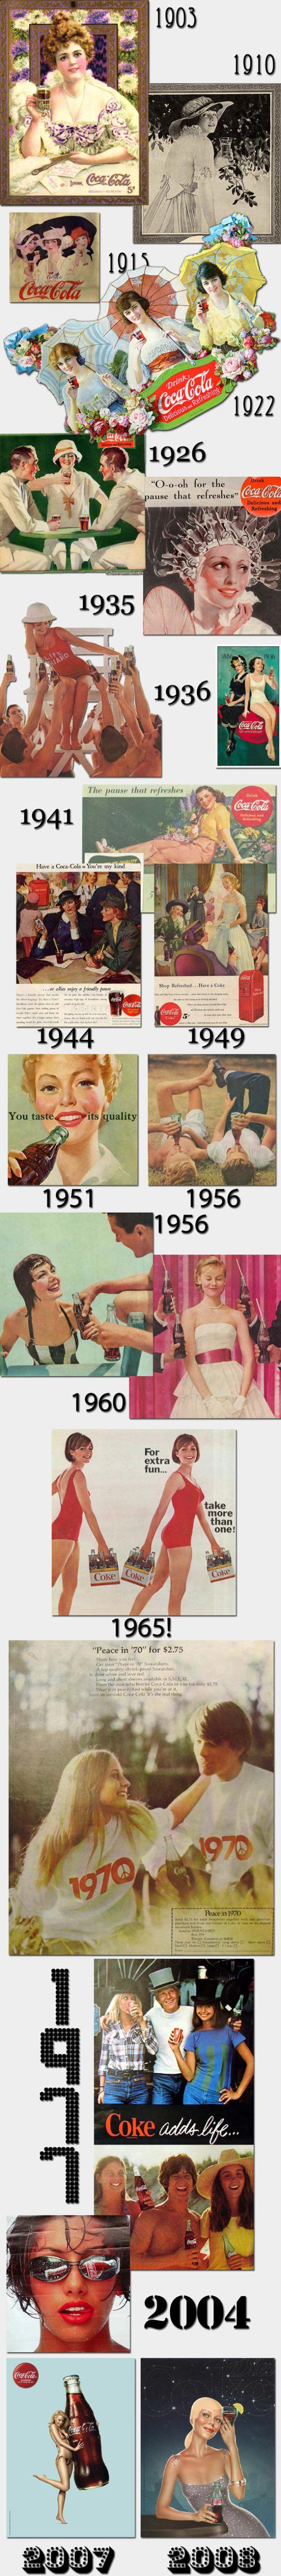 Coca Cola through the years                                                                                                                                                                                 More